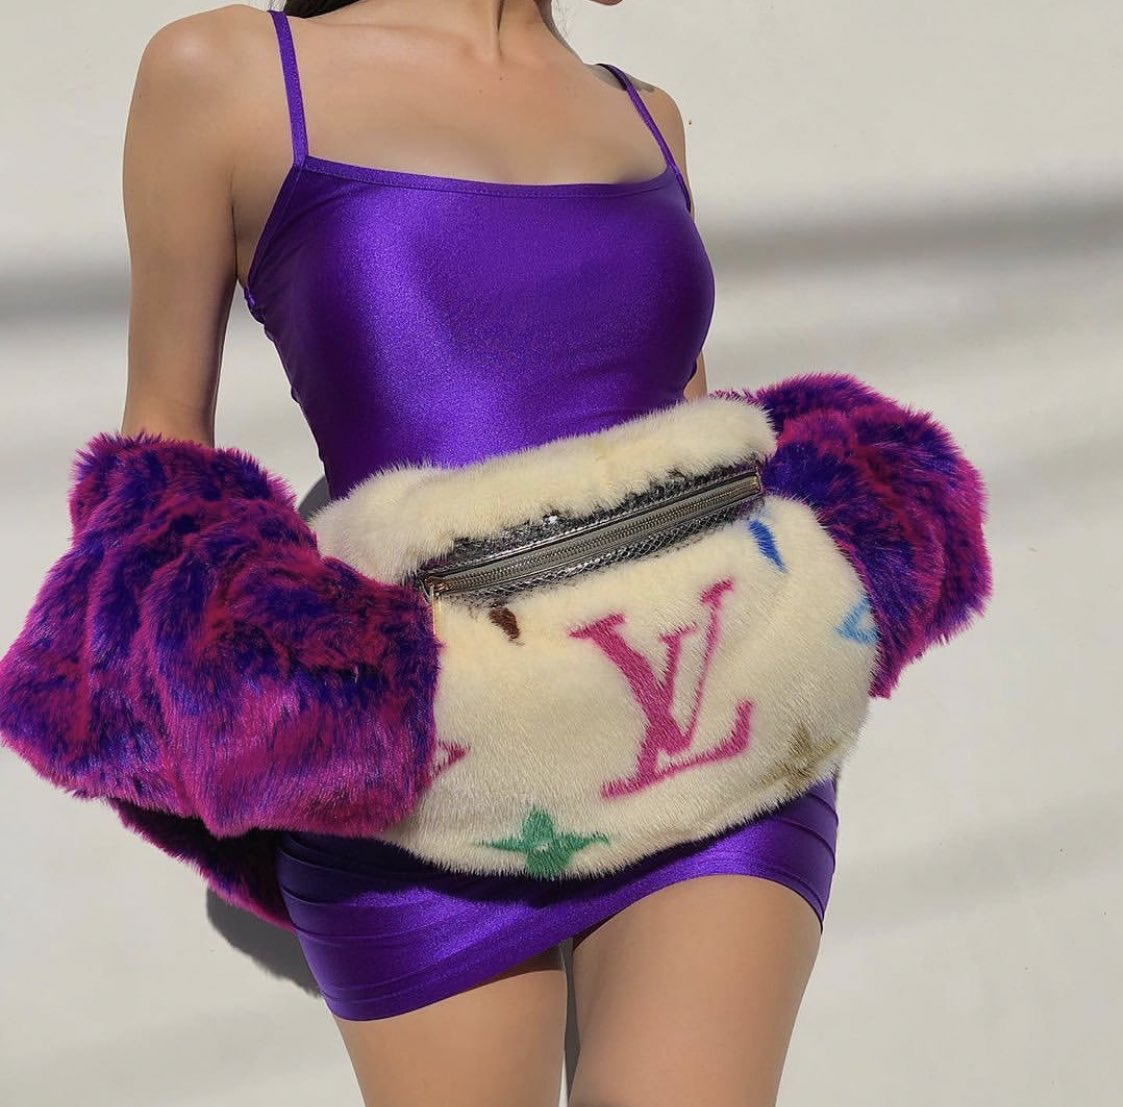 Louis Vuitton Fall 2006 by Marc Jacobs